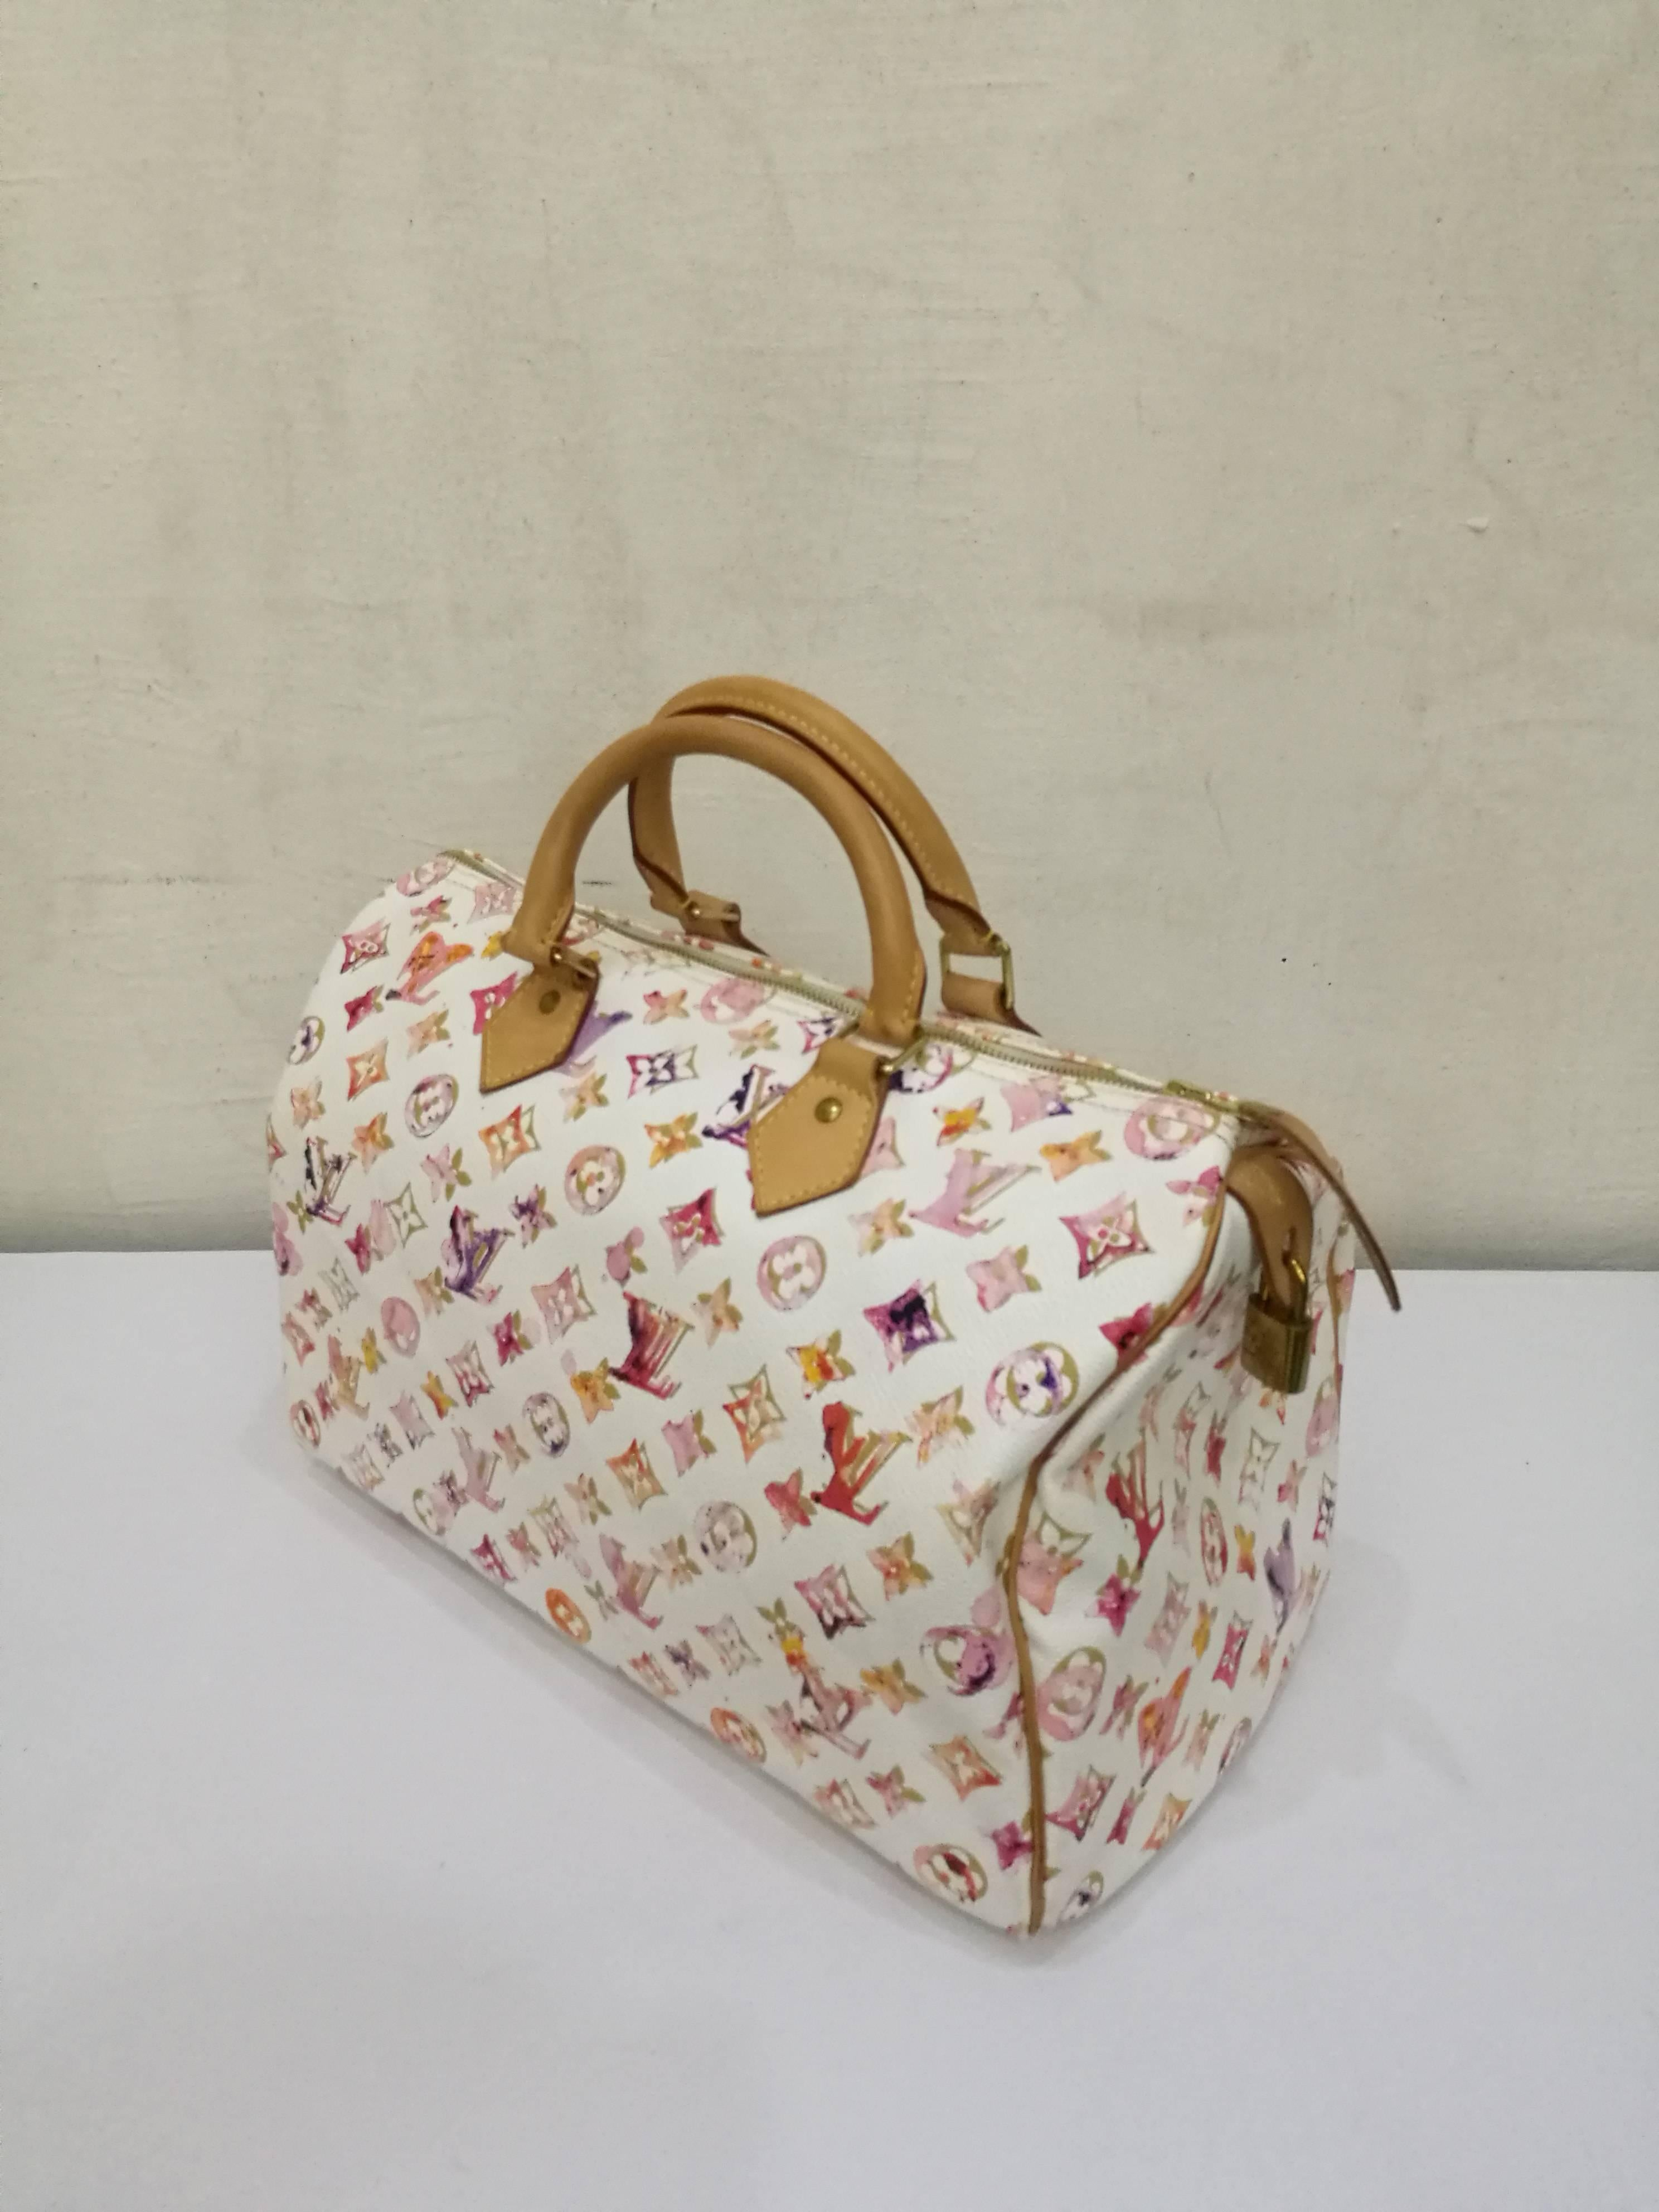 3d7dc875b2fa Louis Vuitton Limited Edition 35 Speedy Watercolour at 1stdibs